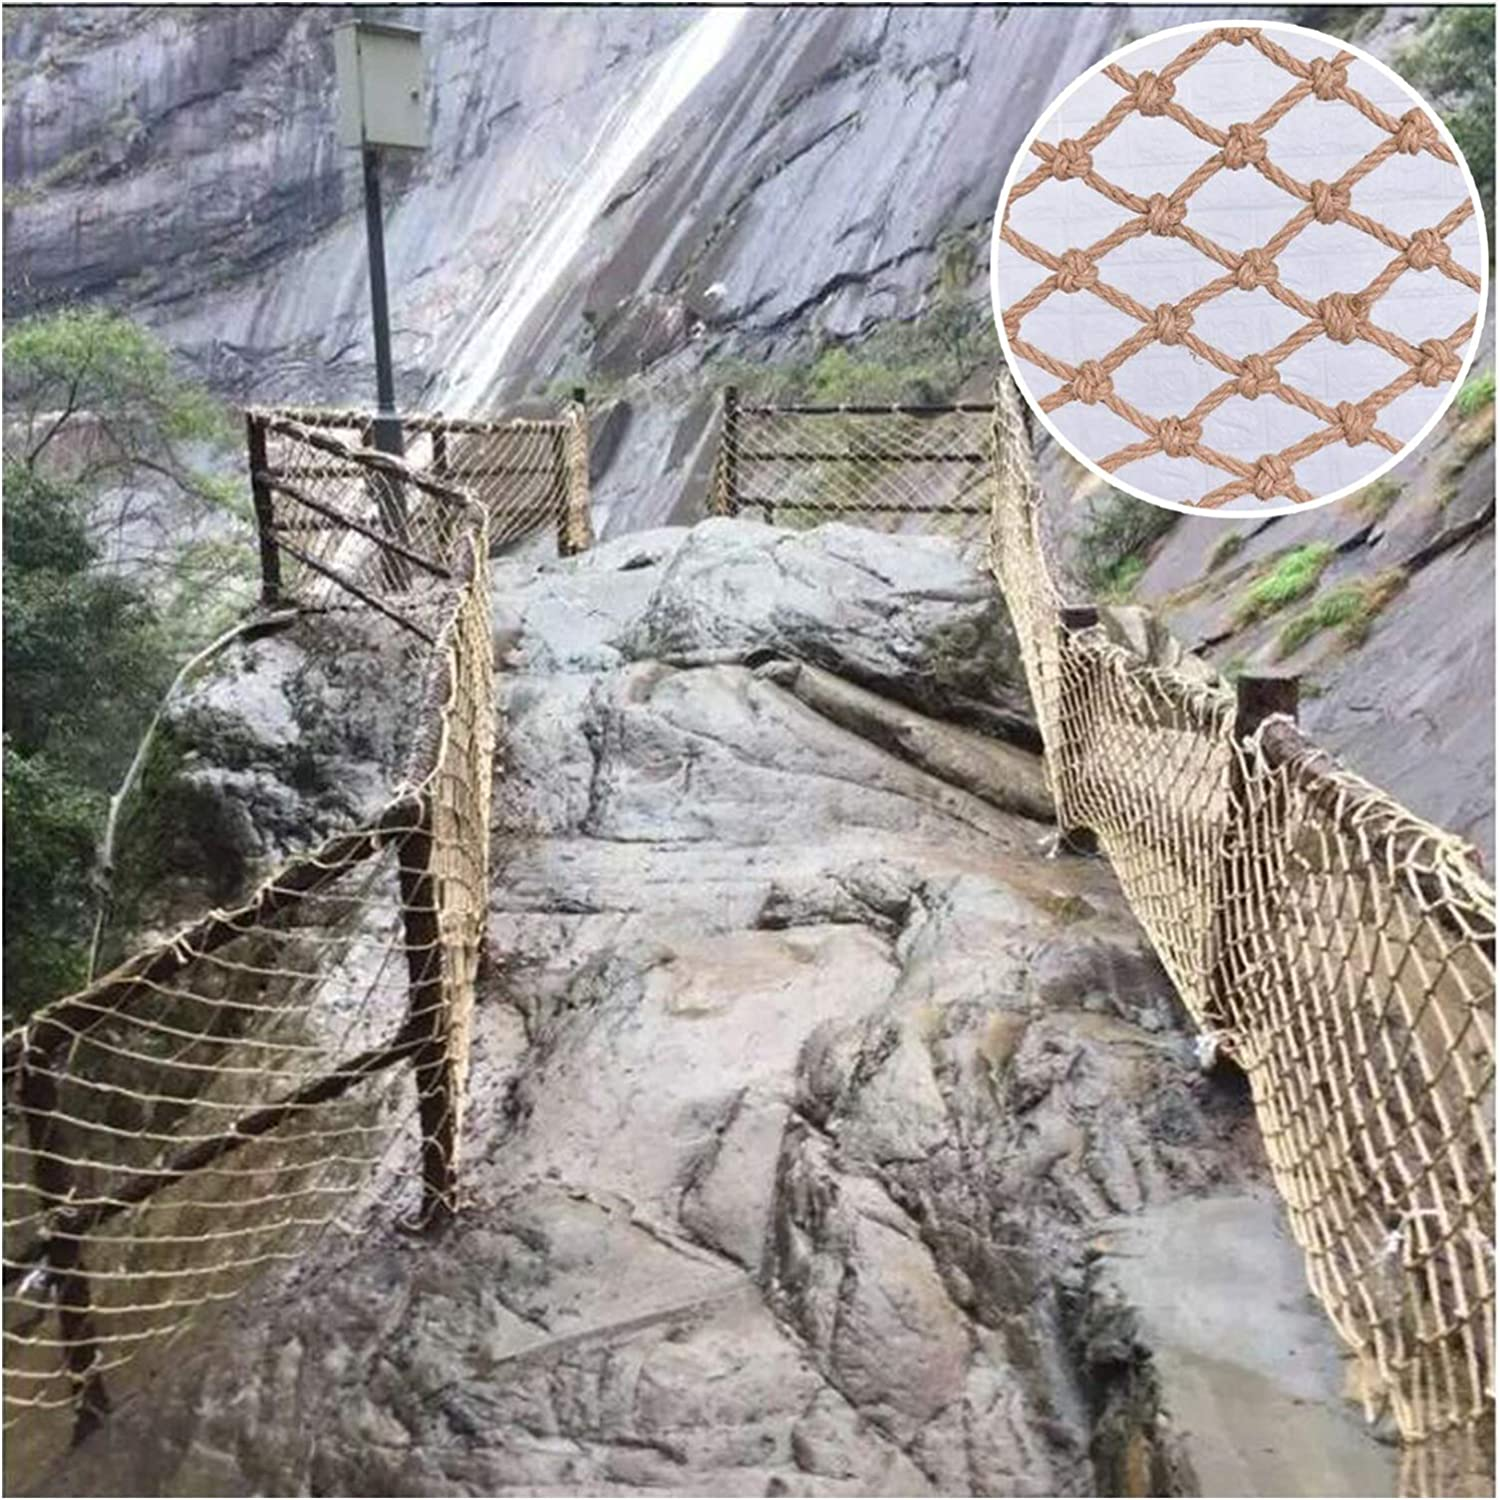 MAHFEI Child Safety Net Free shipping Garden Restaurant Fence Netting Selling and selling Bar Dec